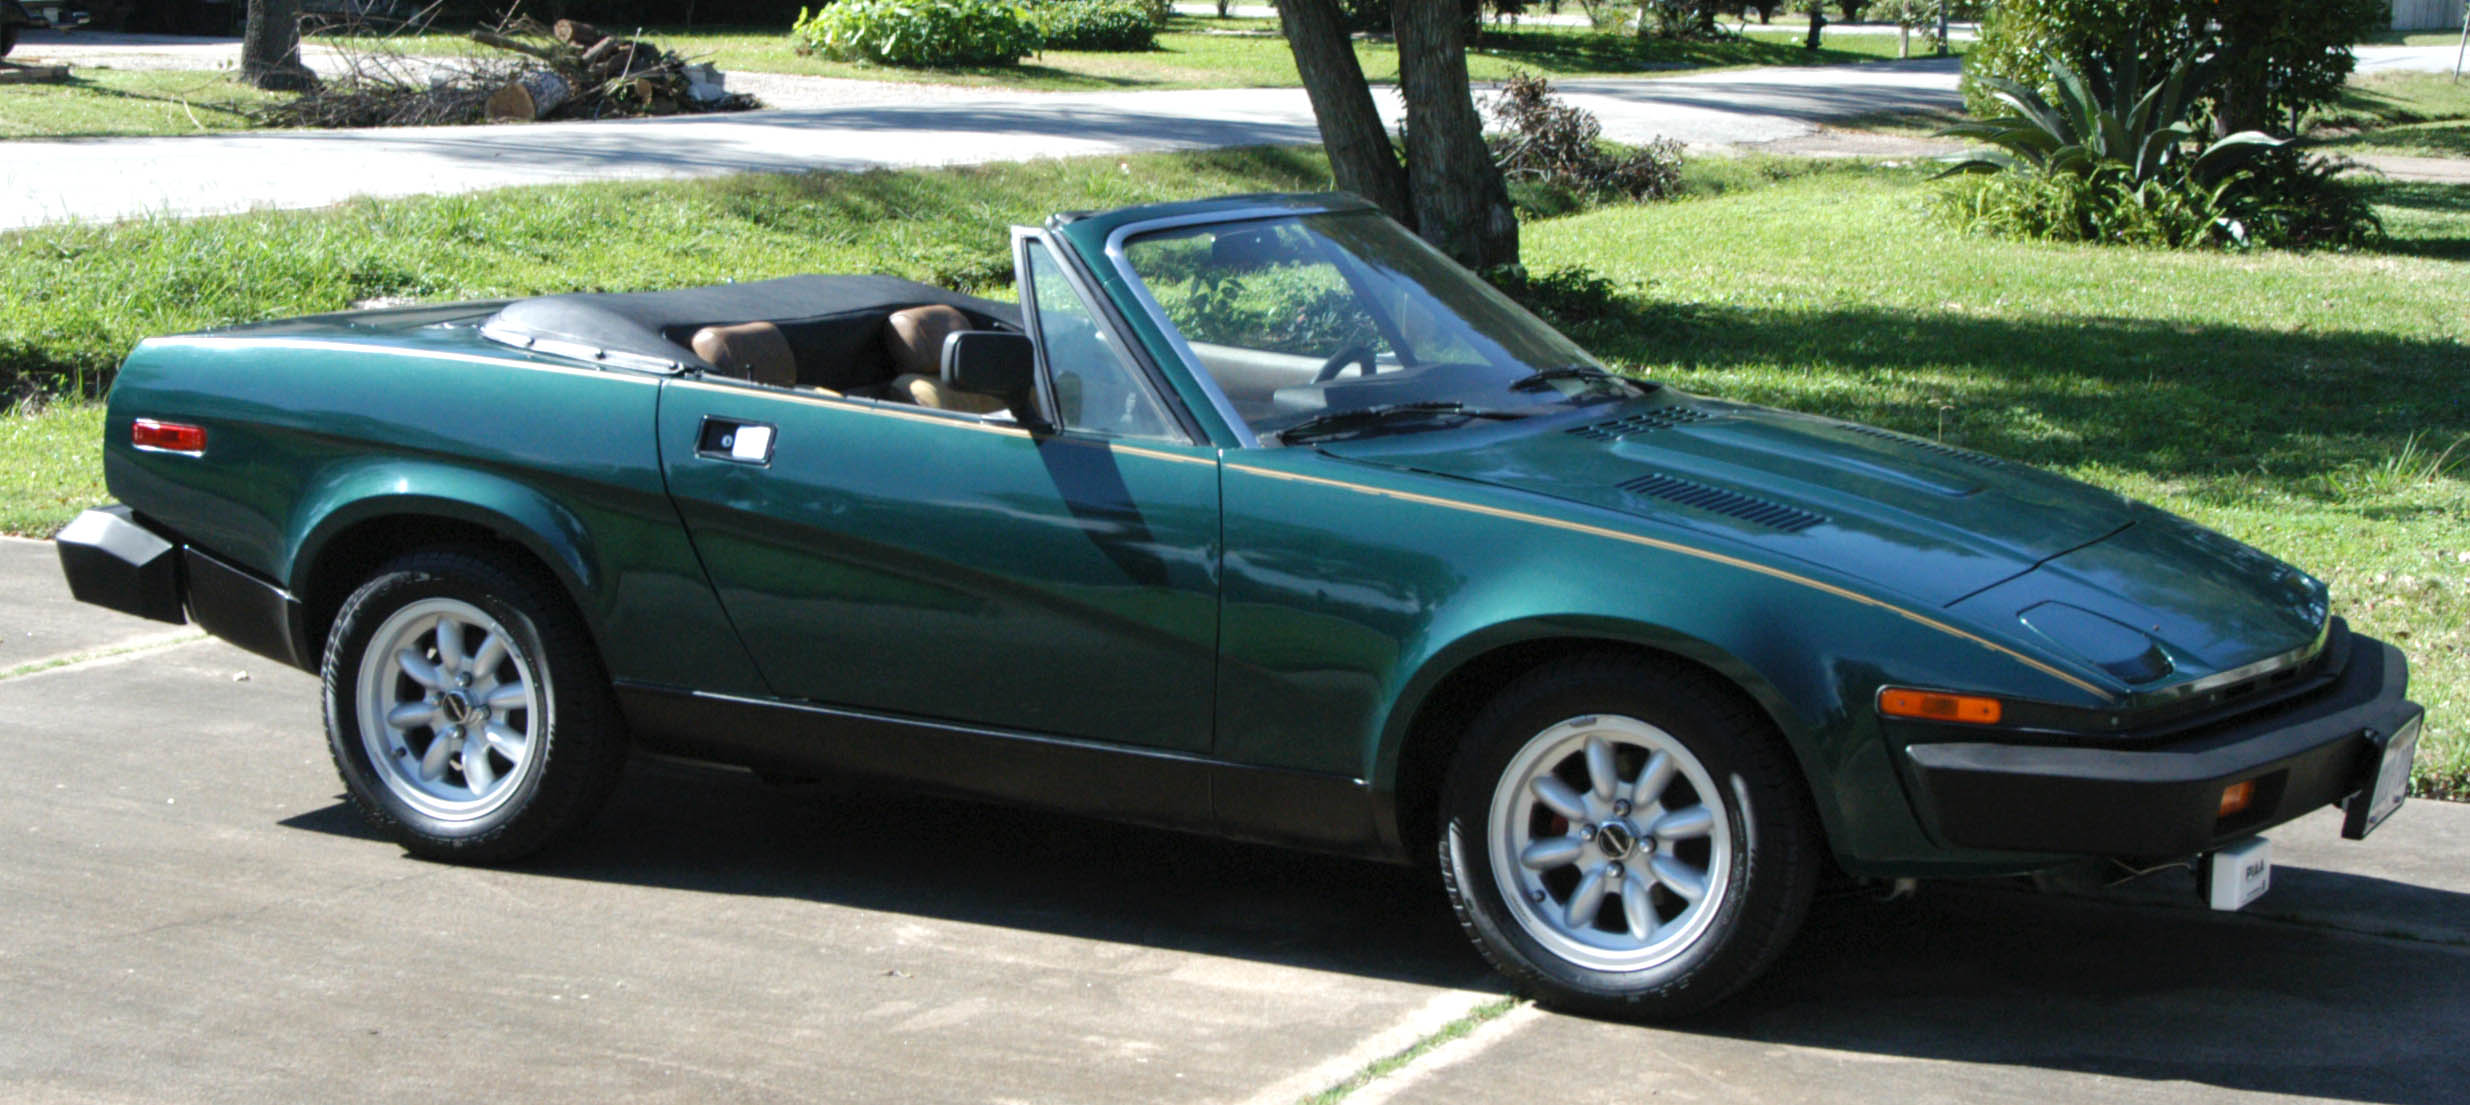 Triumph Tr7 Cars Specifications Technical Data